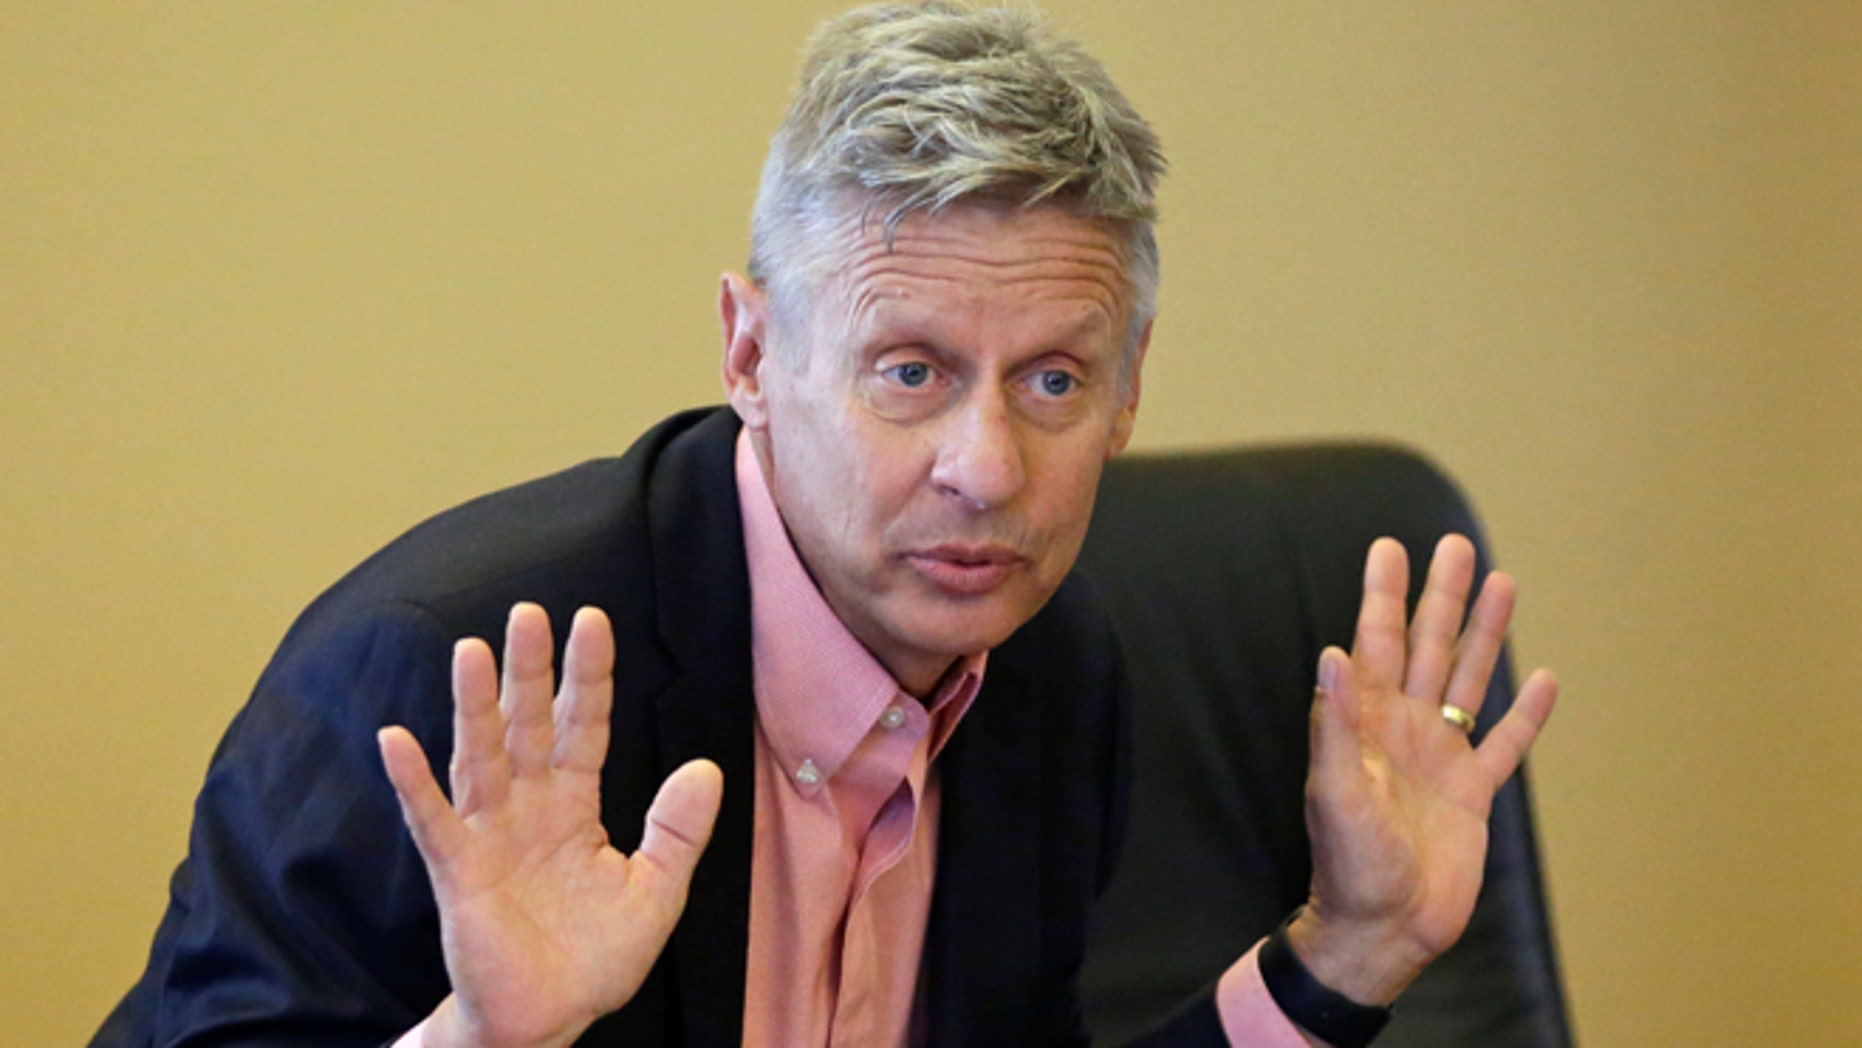 FILE - In this May 18, 2016 file photo, Libertarian presidential candidate, former New Mexico Gov. Gary Johnson speak with legislators at the Utah State Capitol in Salt Lake City. Utah Republicans, mostly Mormons, are now struggling to figure out how to cast their vote this November. Donald Trump has shattered the normal Republican consensus in Utah even more so than he has nationwide, activating fault lines under a normally stable electorate largely unified by a single religion. (AP Photo/Rick Bowmer, File)